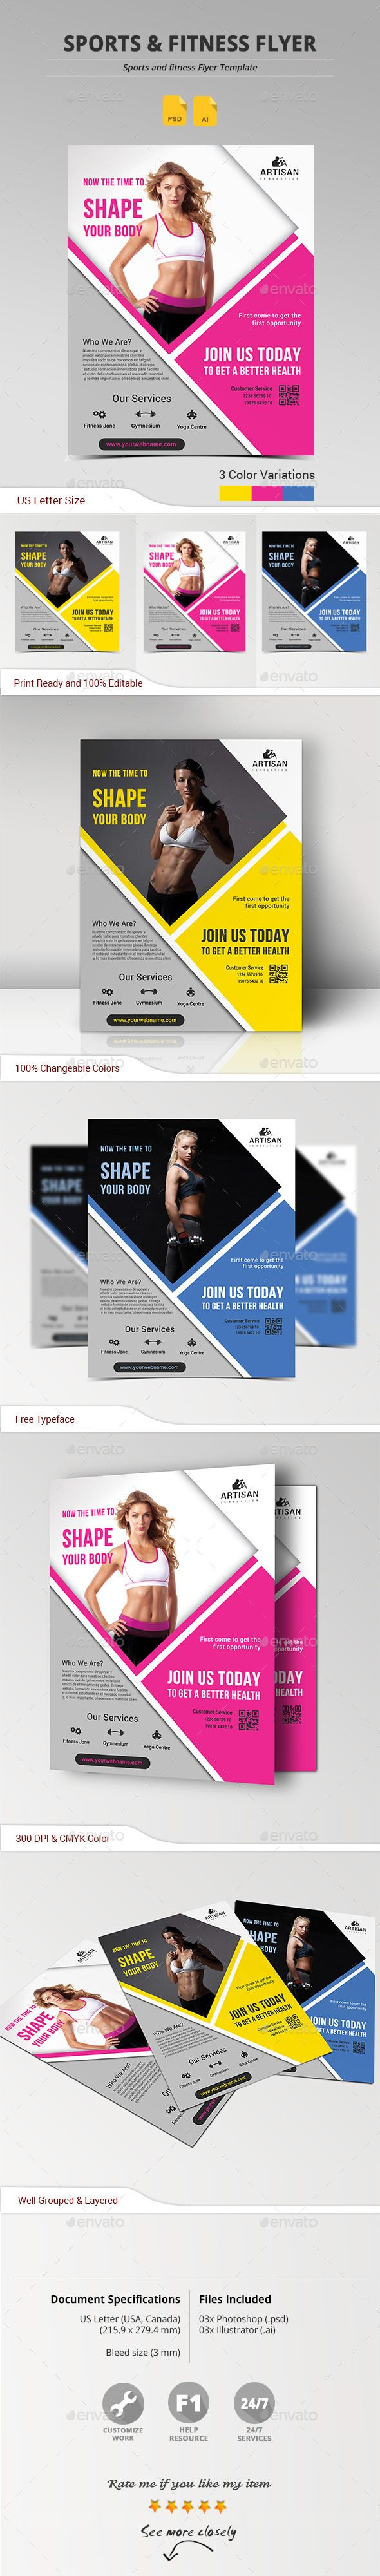 Sports & Fitness Flyer